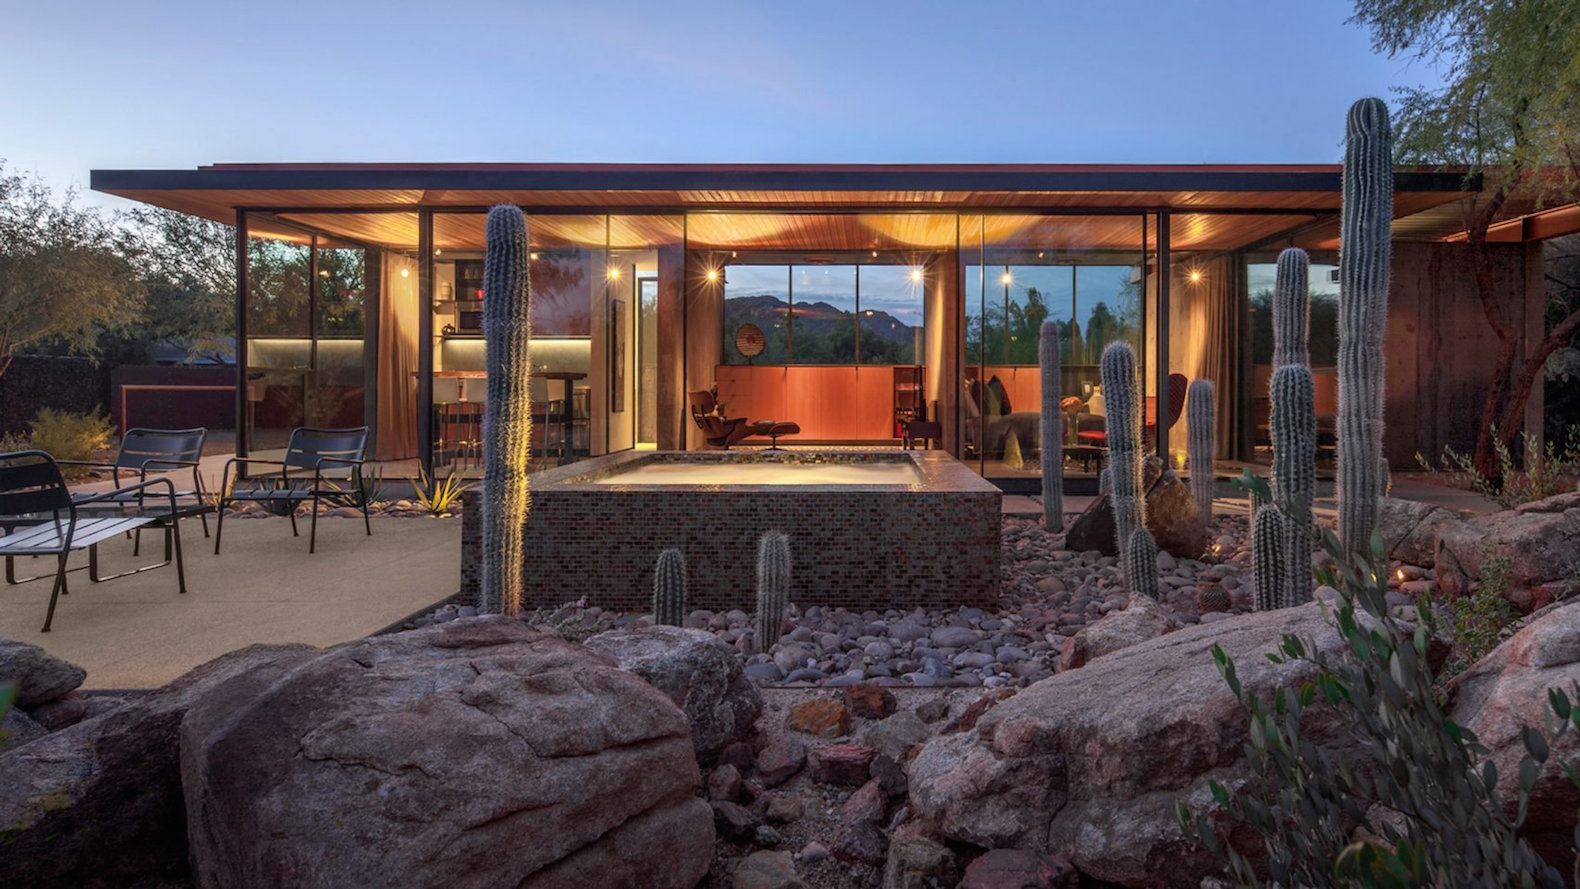 This swanky desert guesthouse was fashioned out of a former horse barn